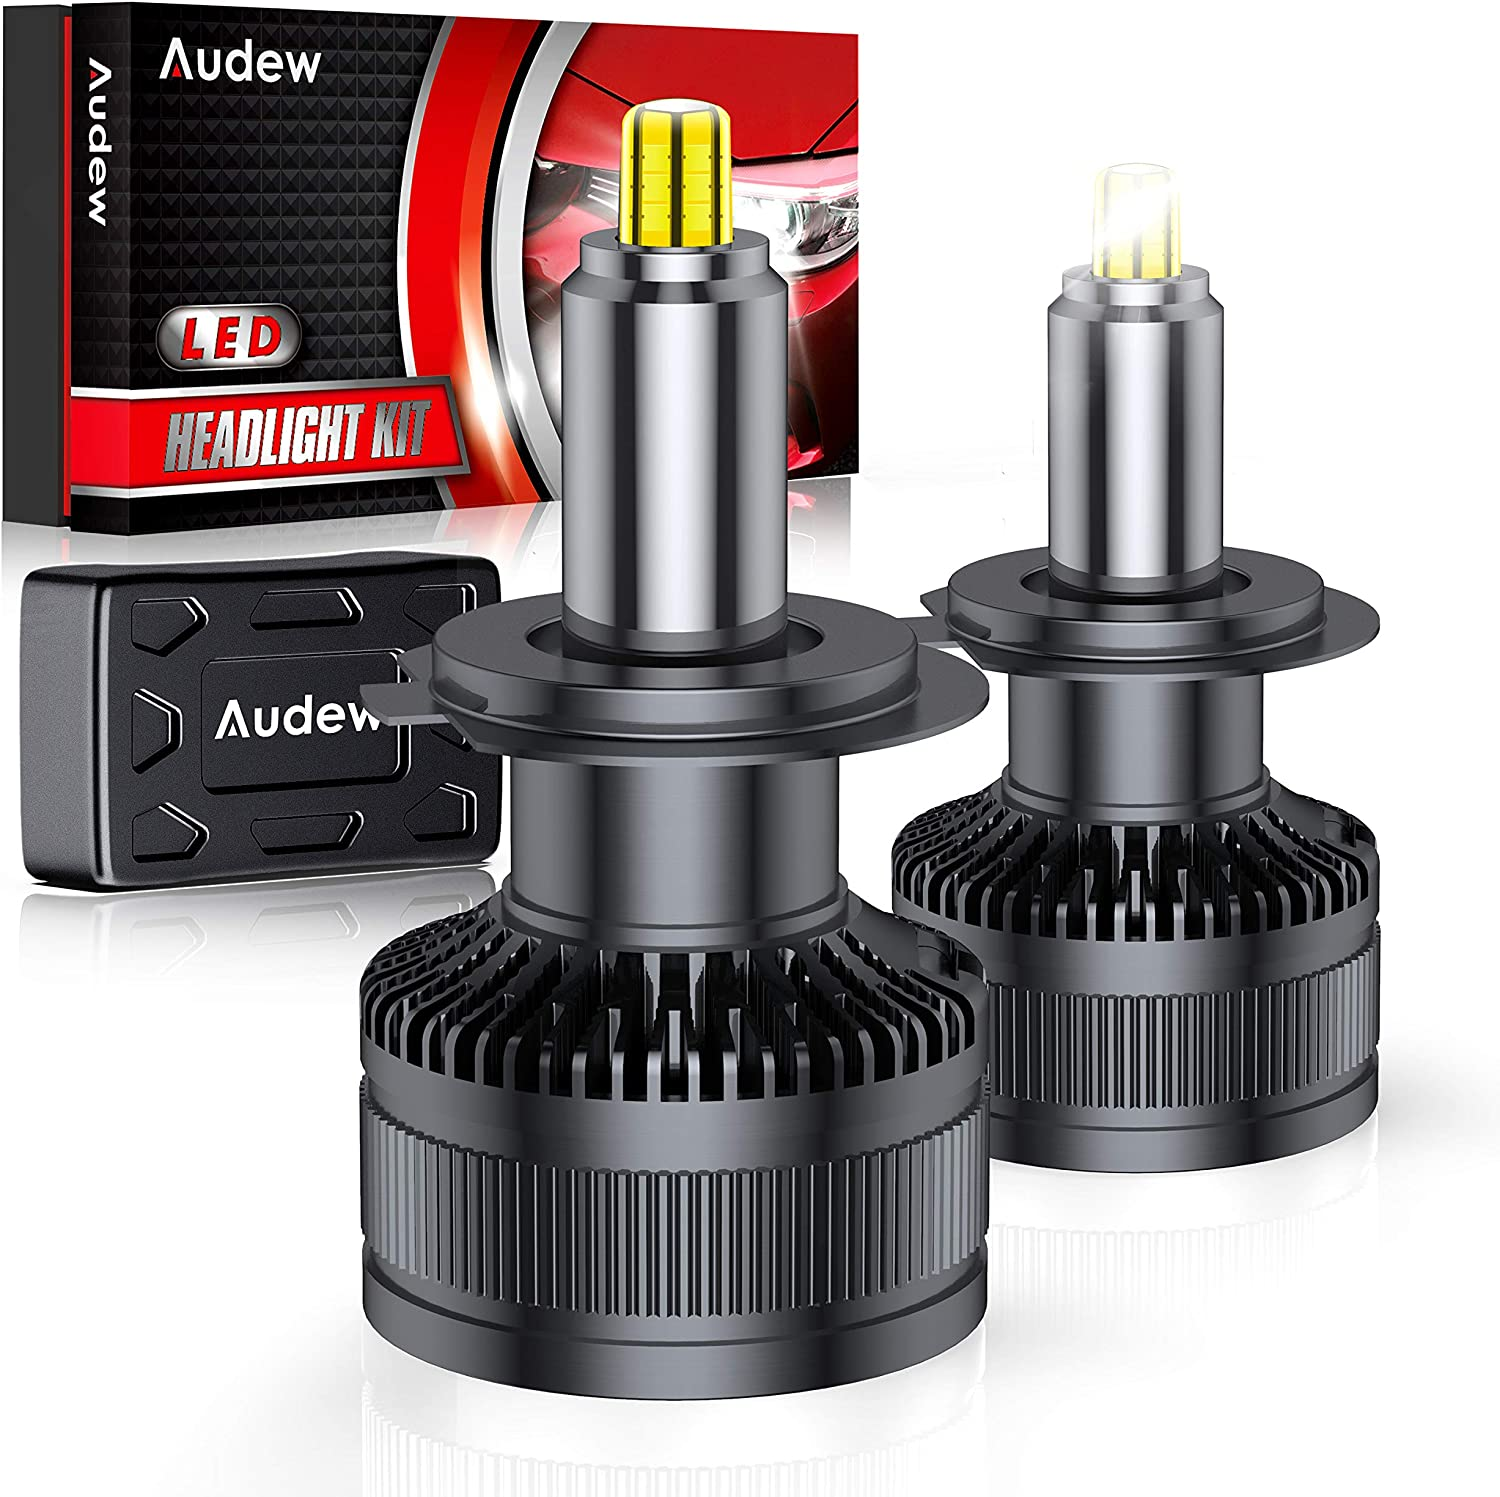 Audew H7 LED Headlight Bulbs